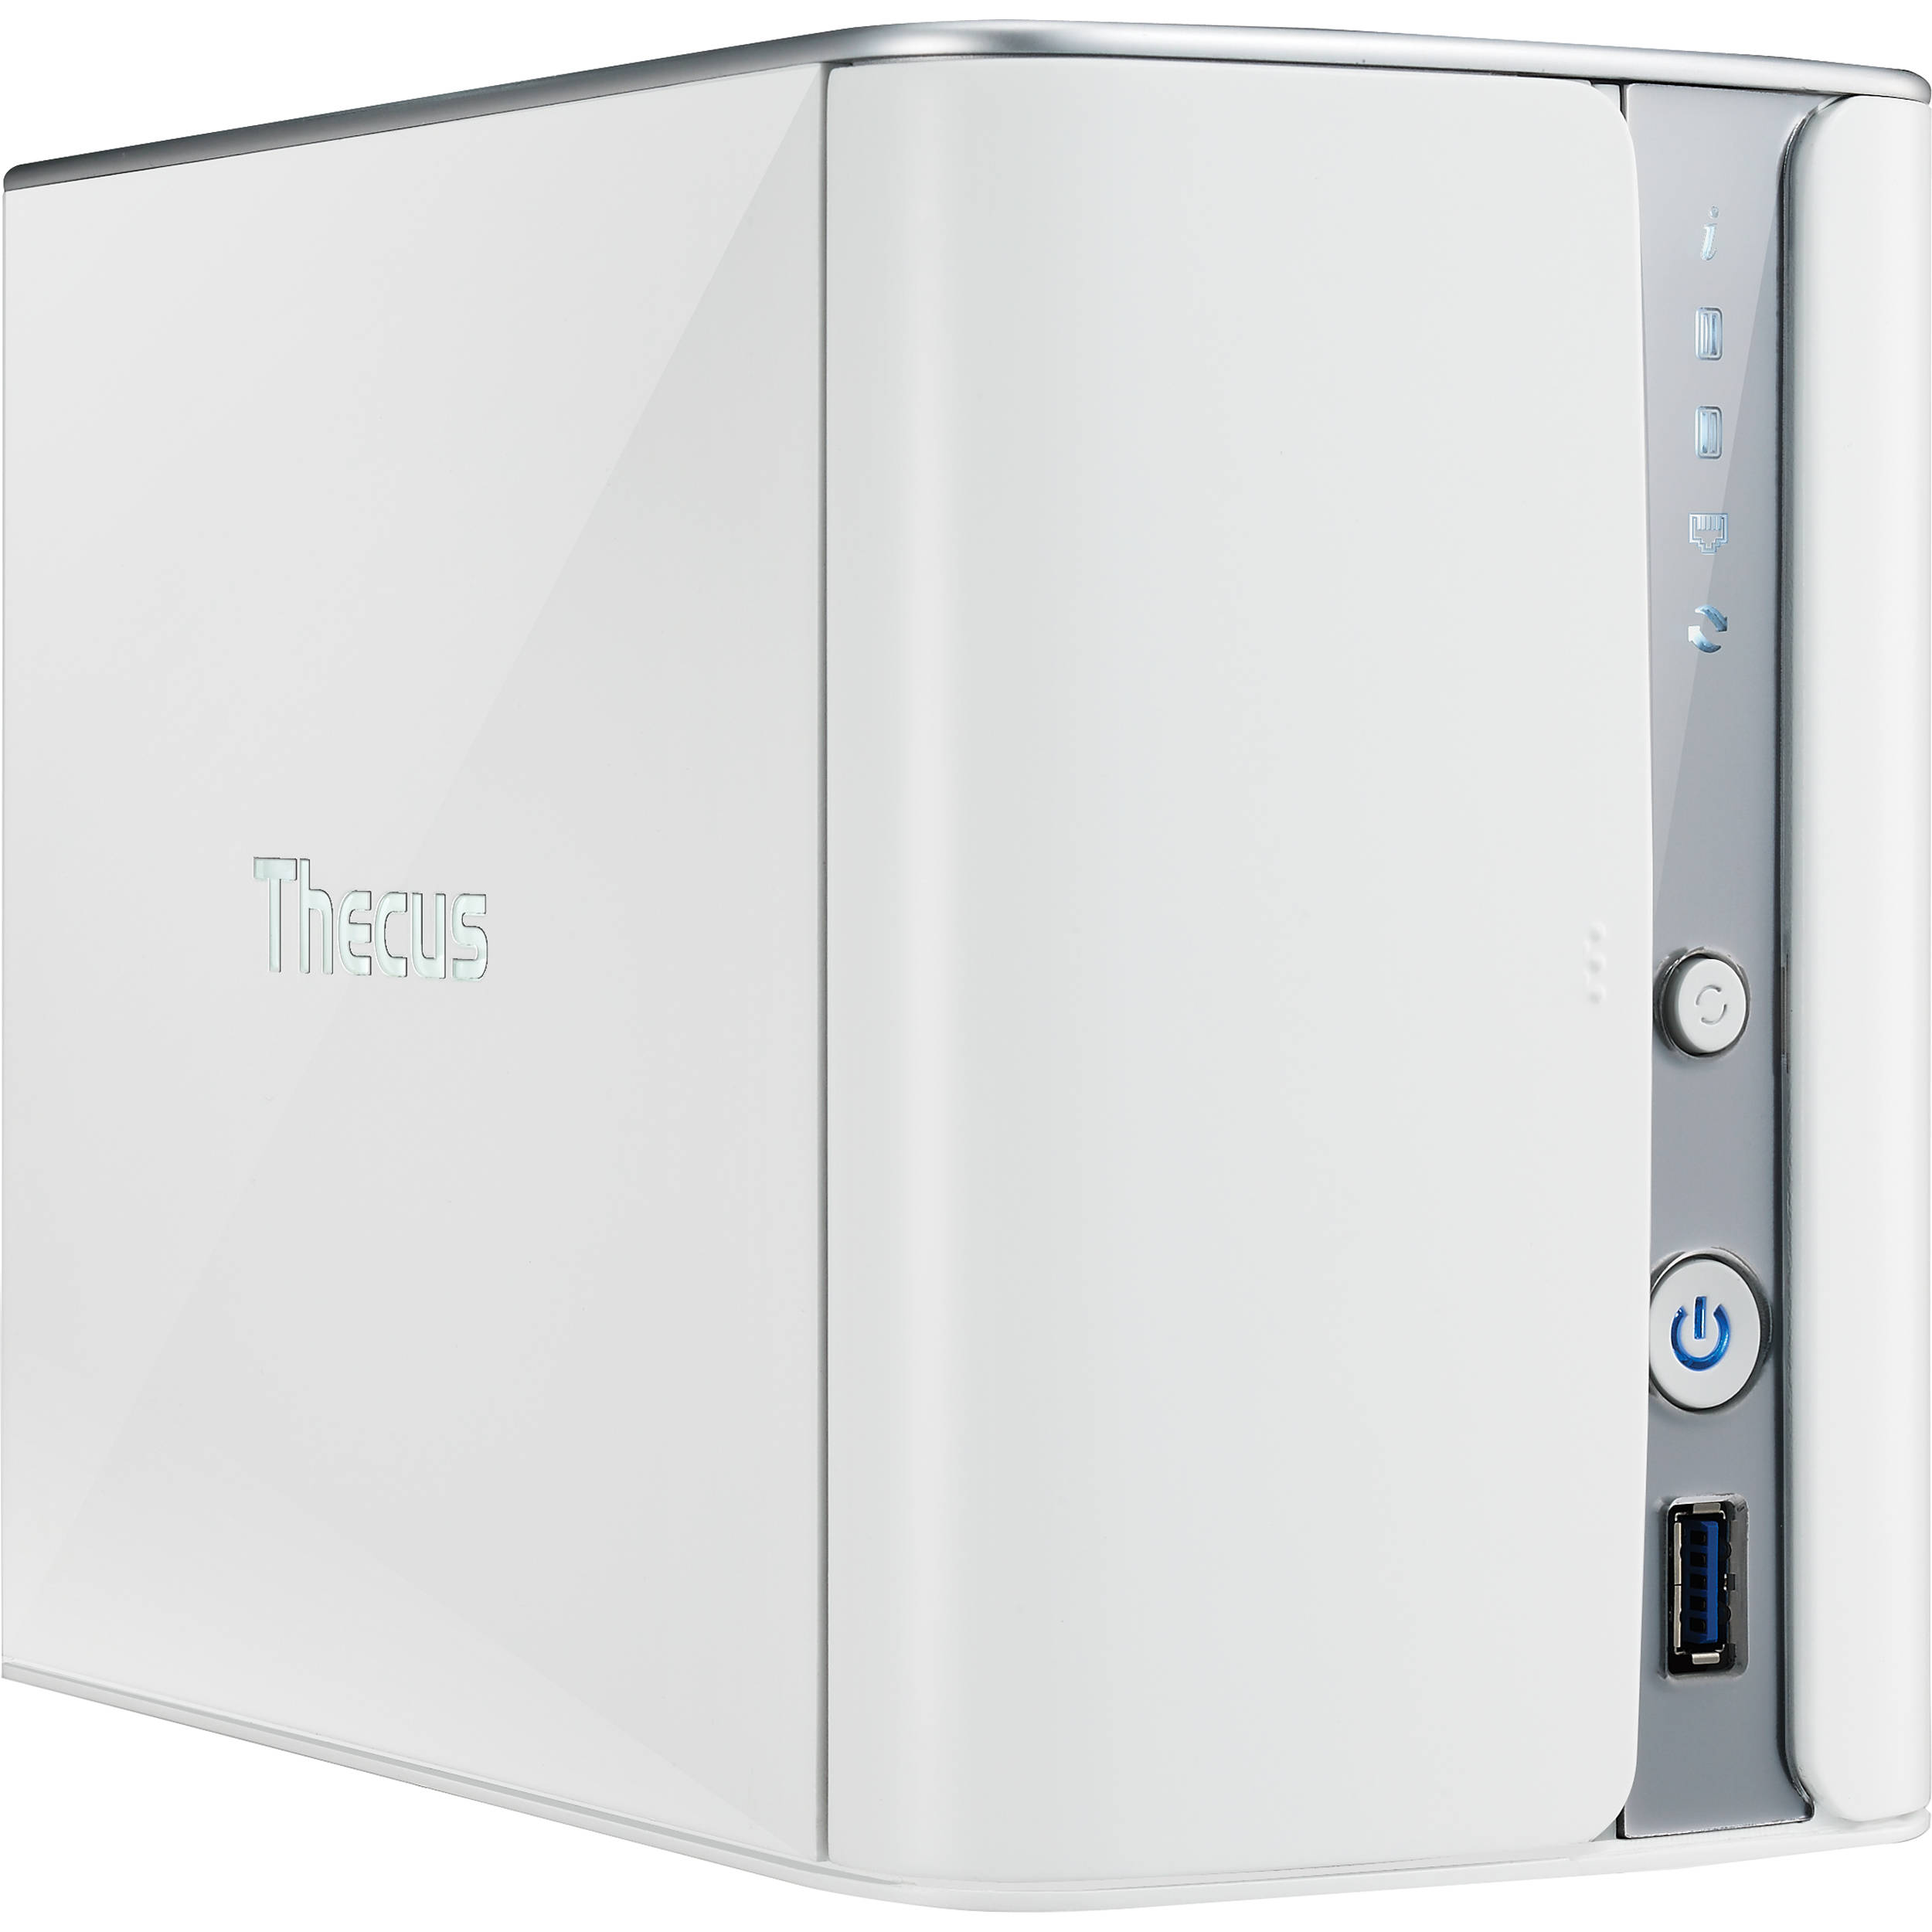 Thecus N2520 NAS Server Drivers for Windows 10